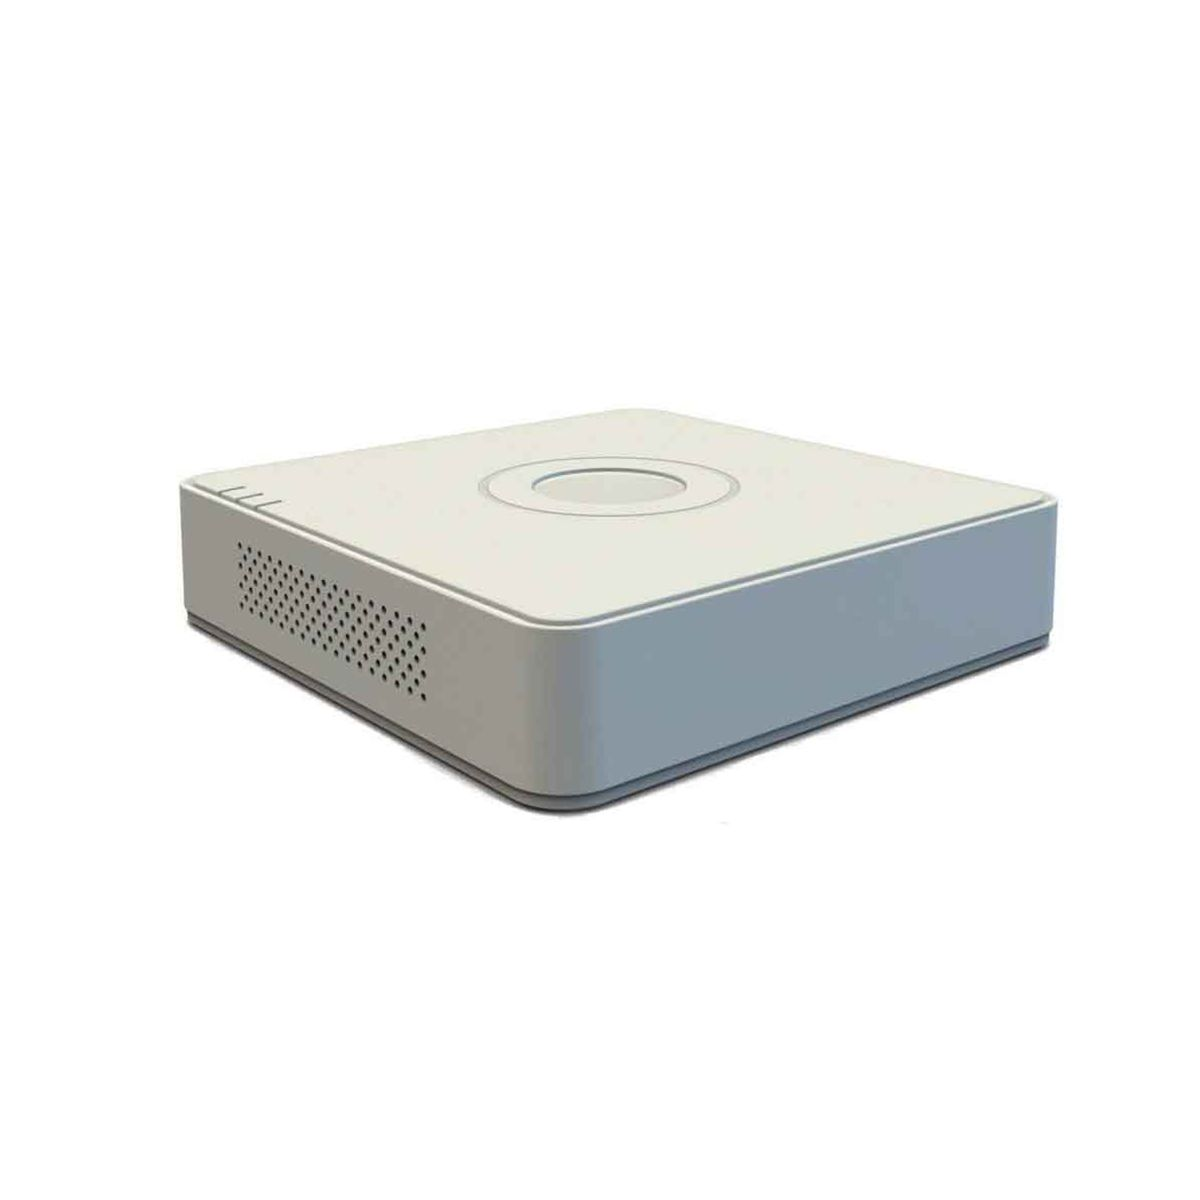 DVR Hikvision 16 canales DS-7116HGHI-F1/N